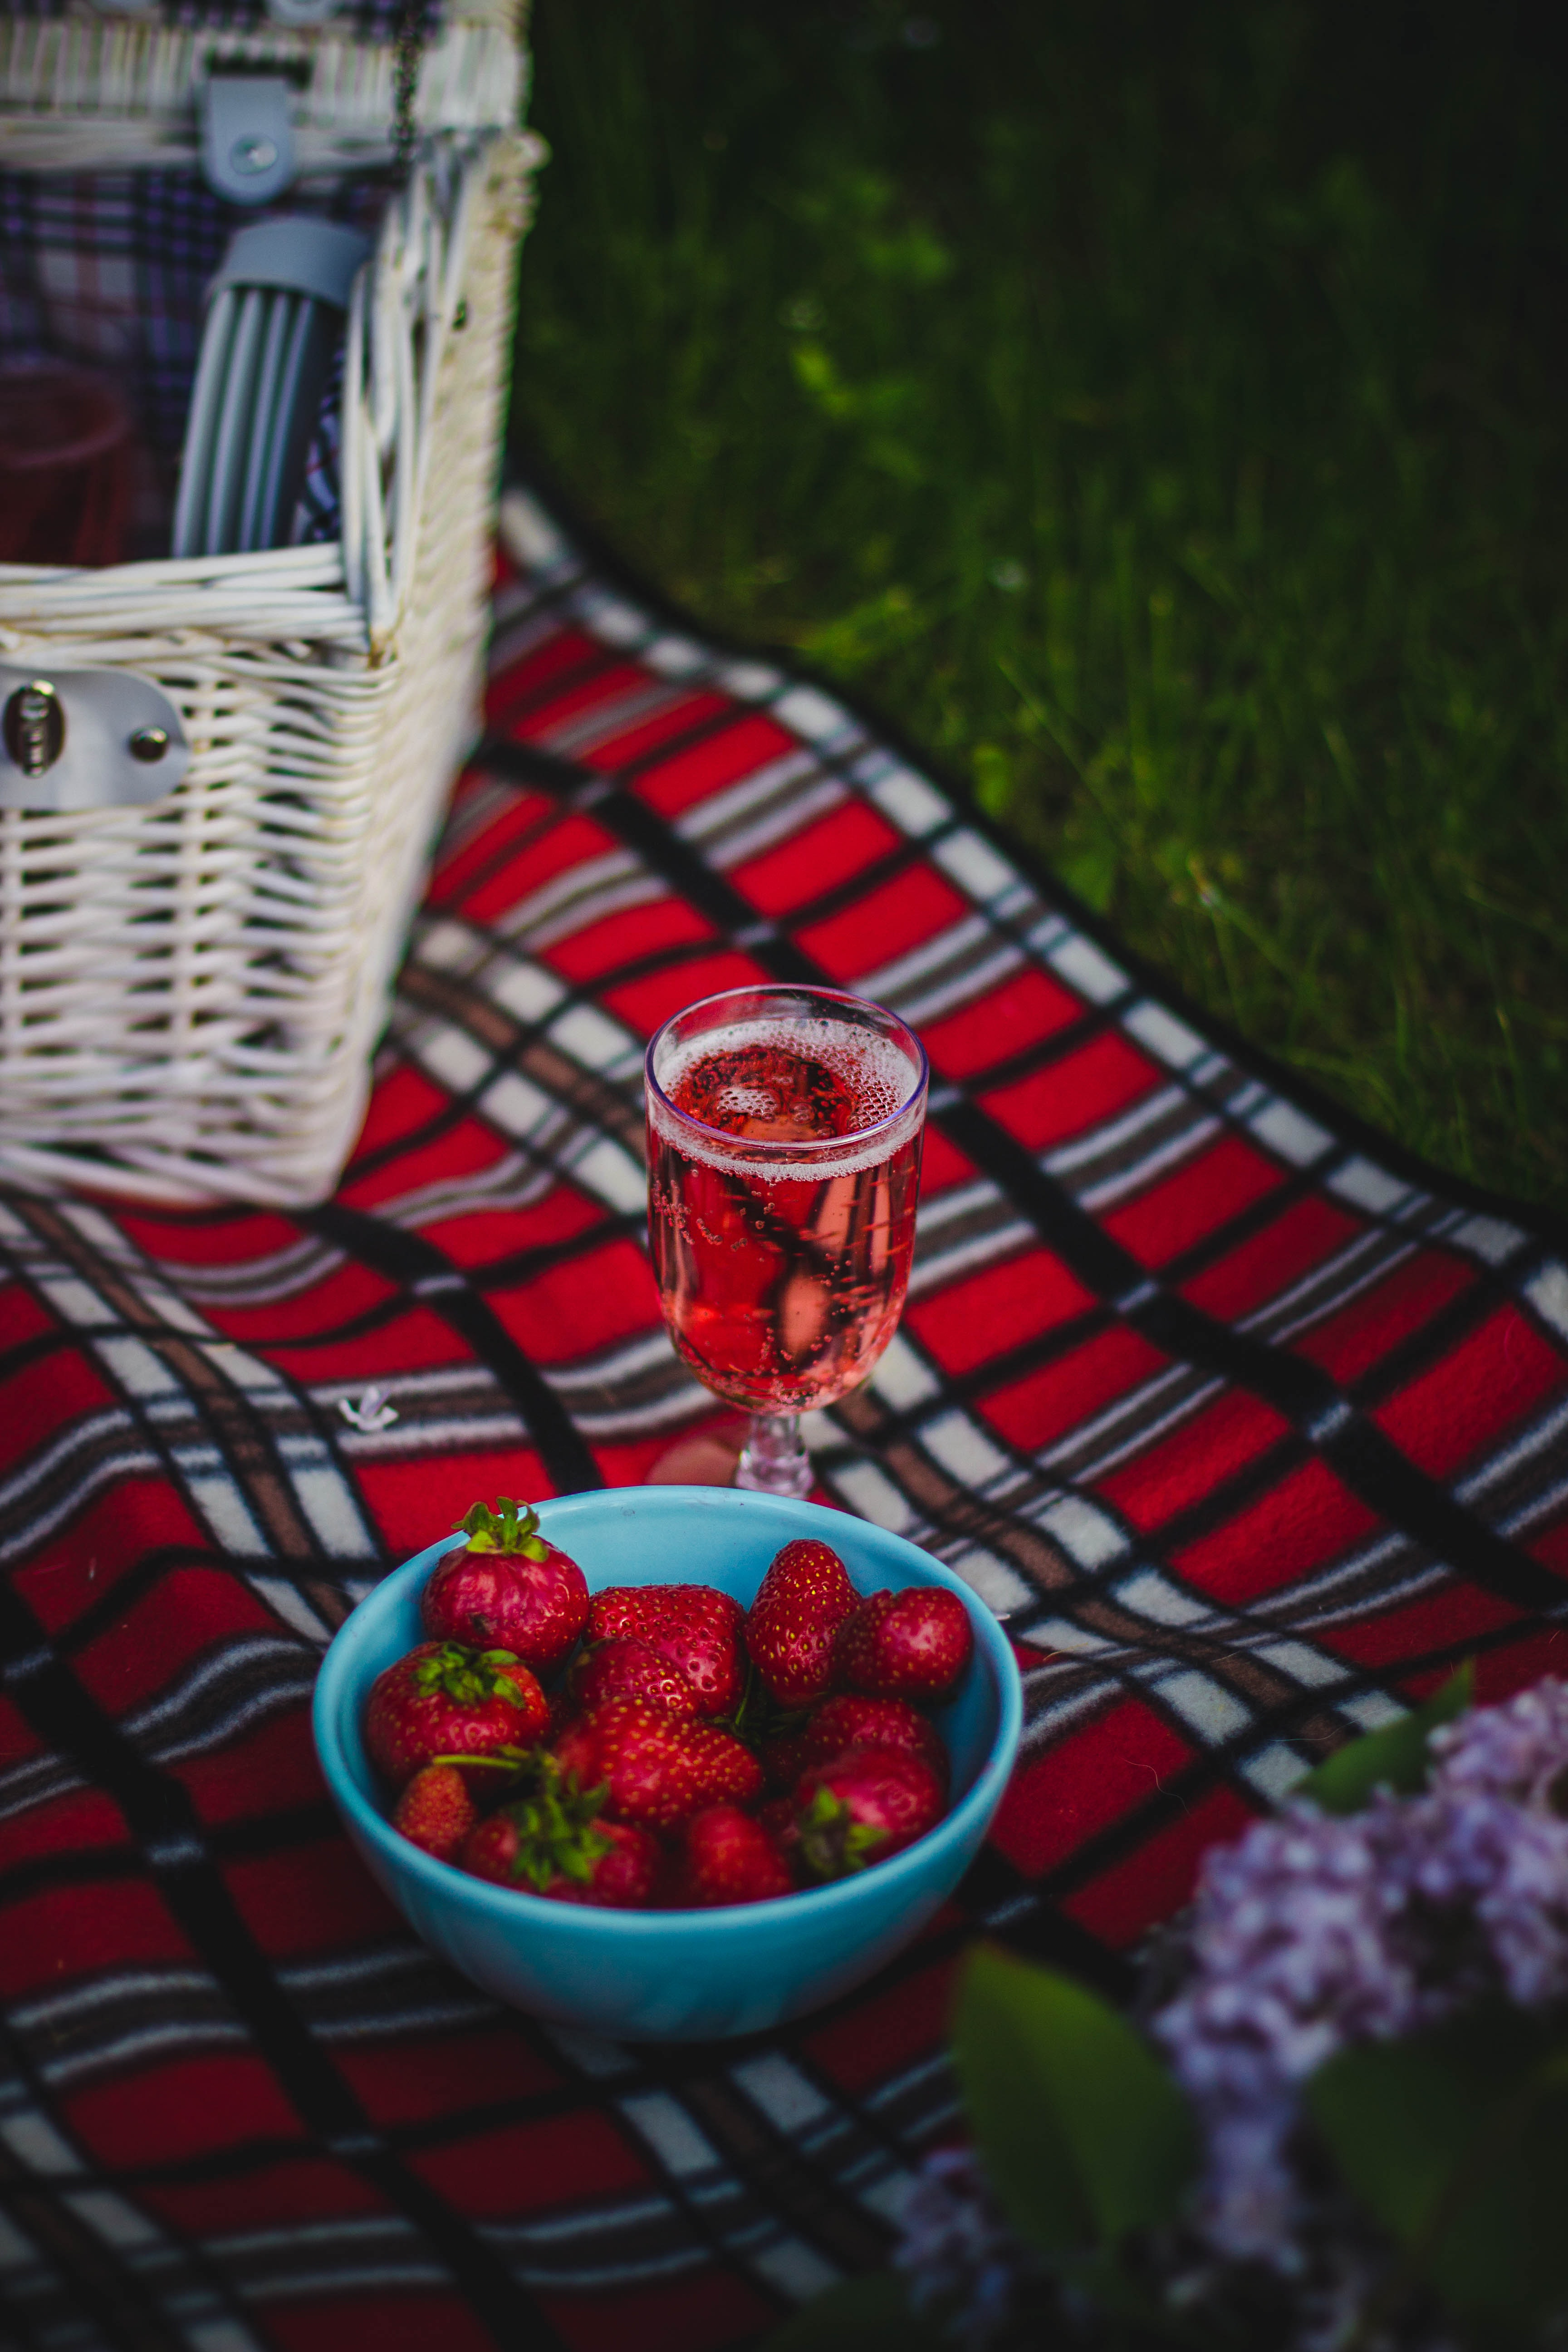 Clear wine glass with wine near strawberry fruit on red white and black plaid textile photo